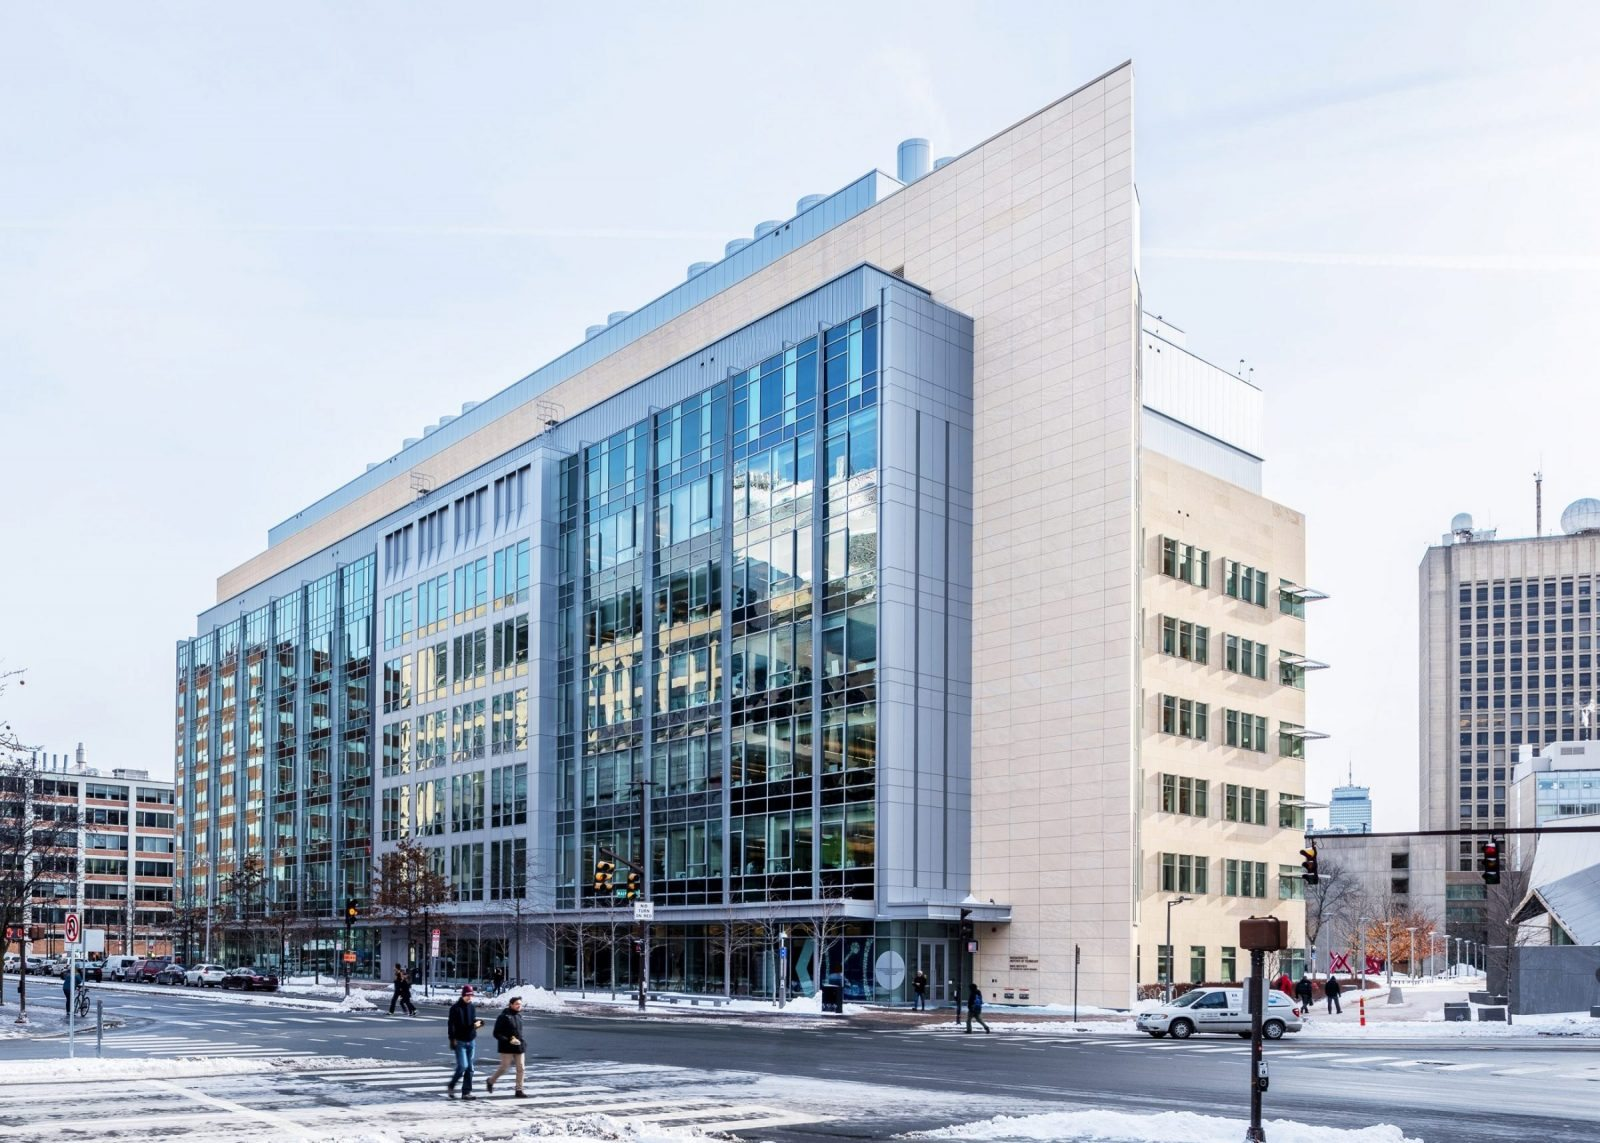 MIT / Koch Institute for Integrative Cancer Research